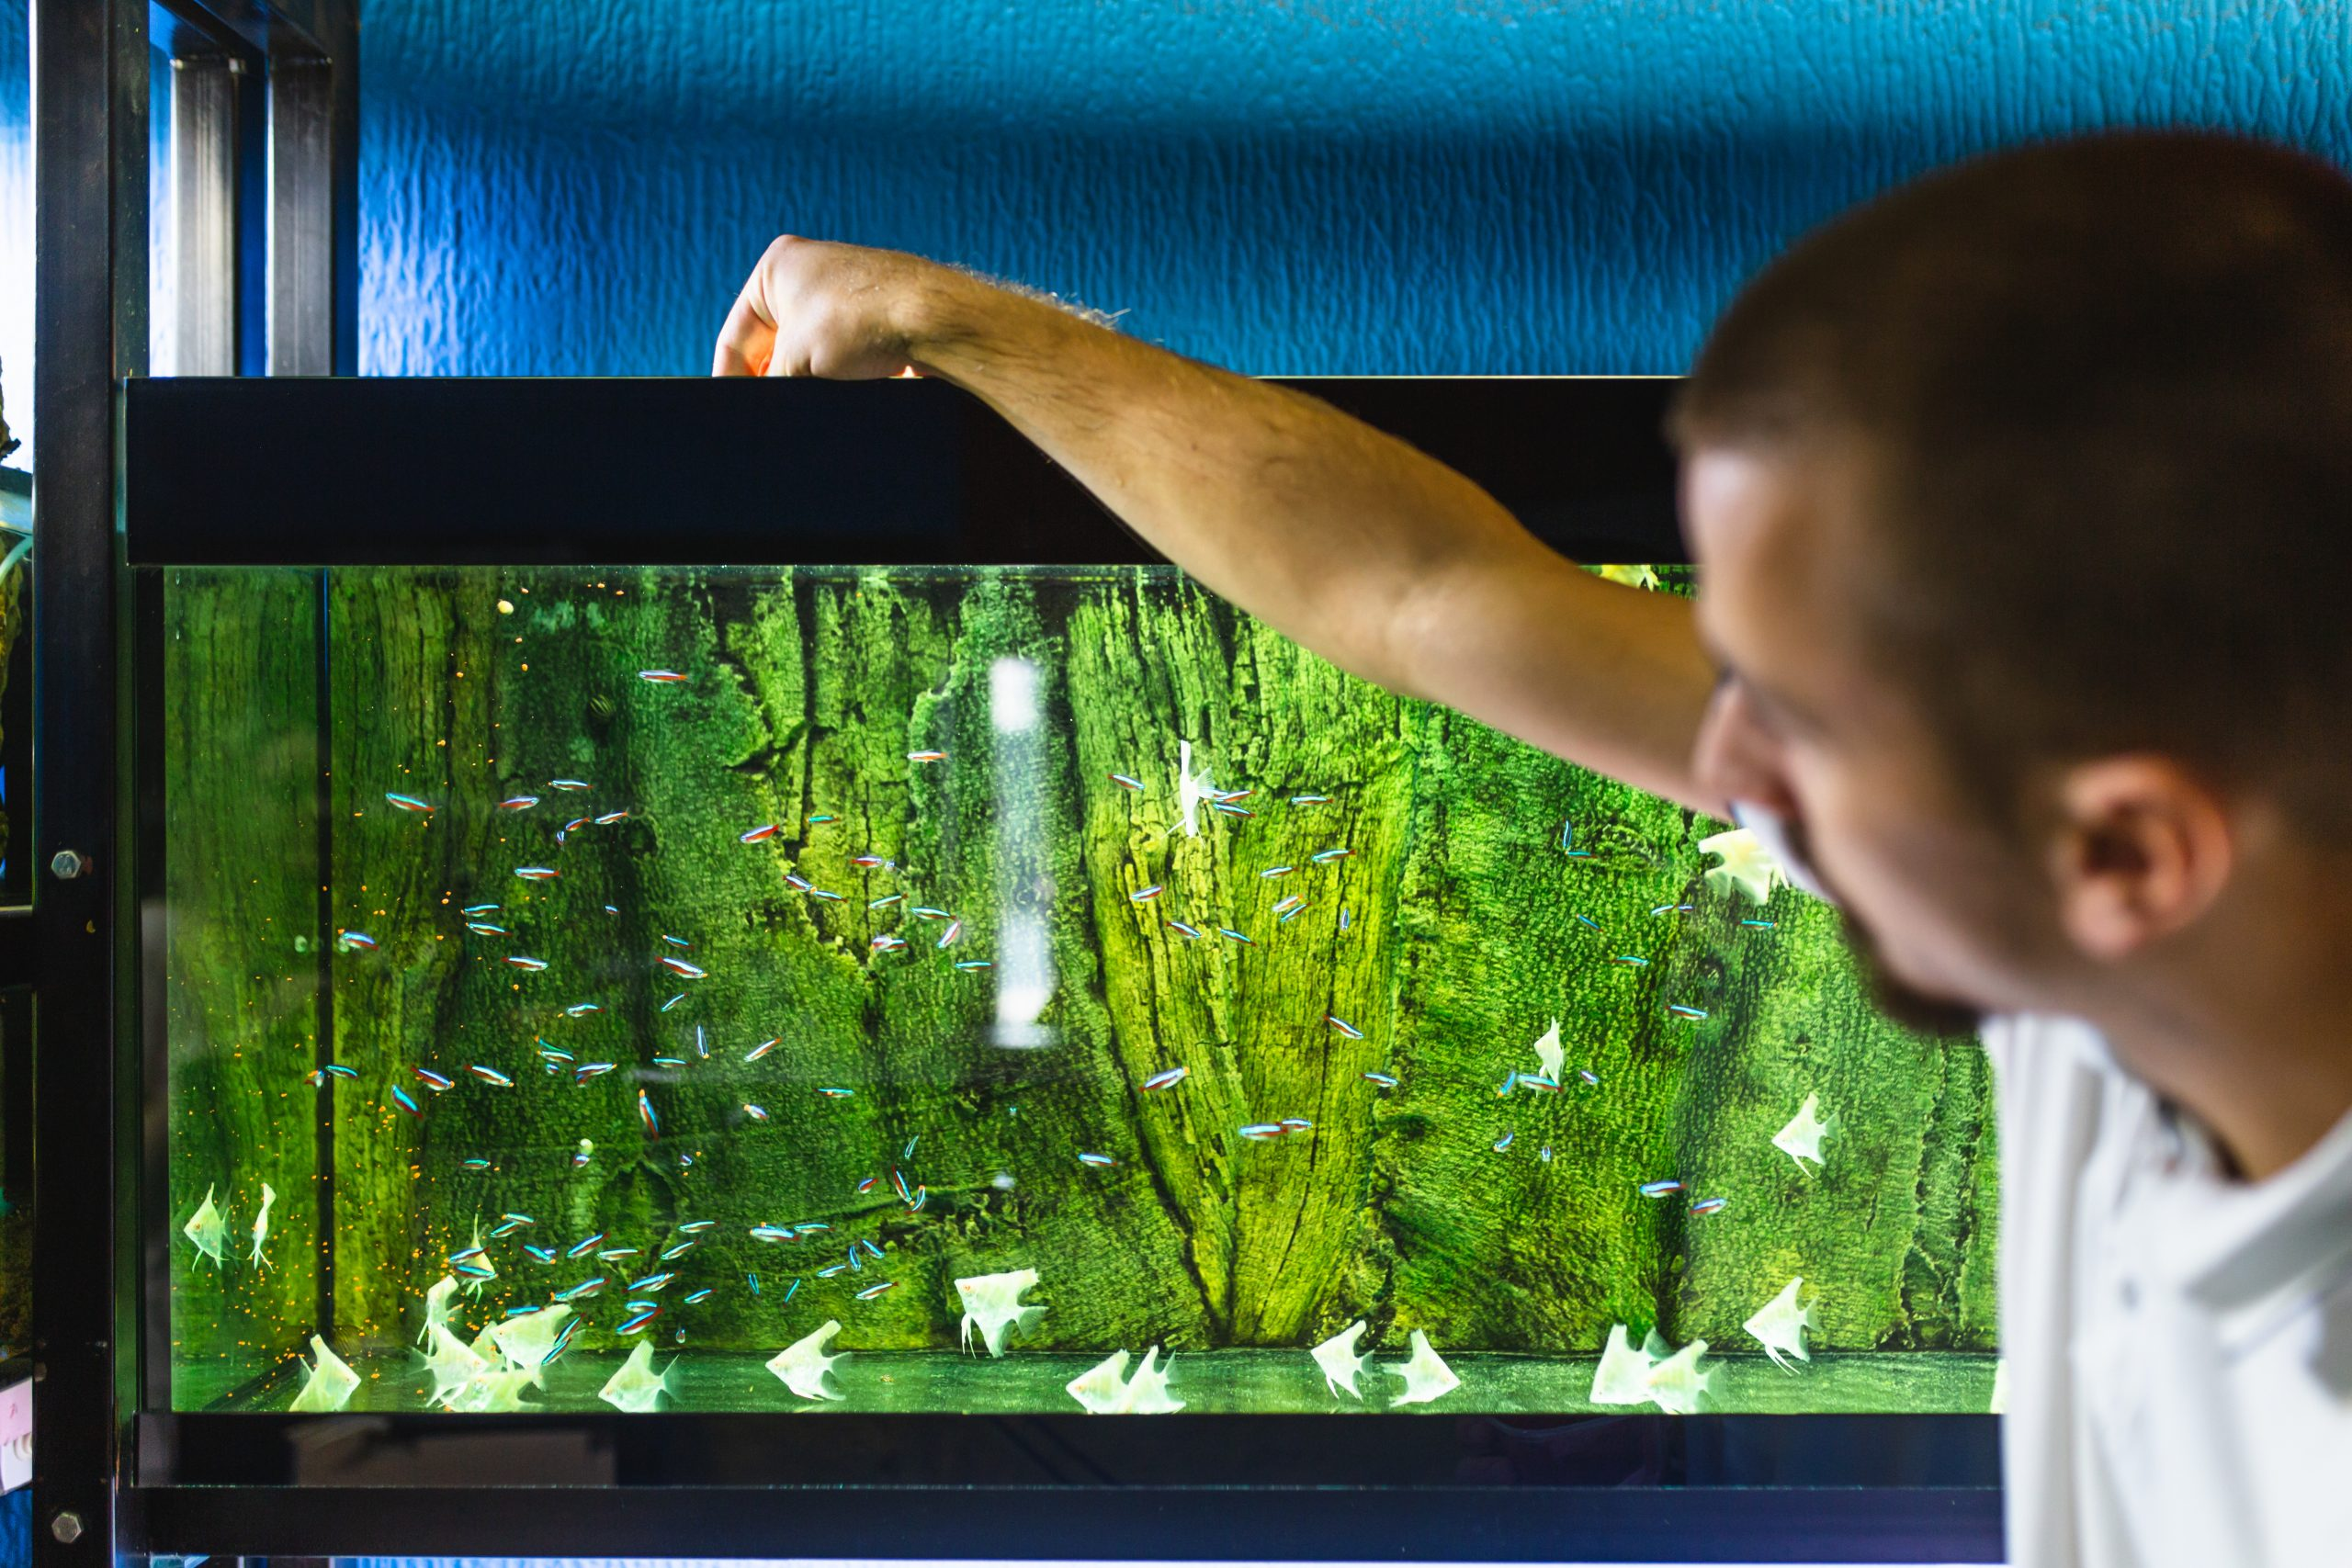 How to Get Rid of Algae in Fish Tank